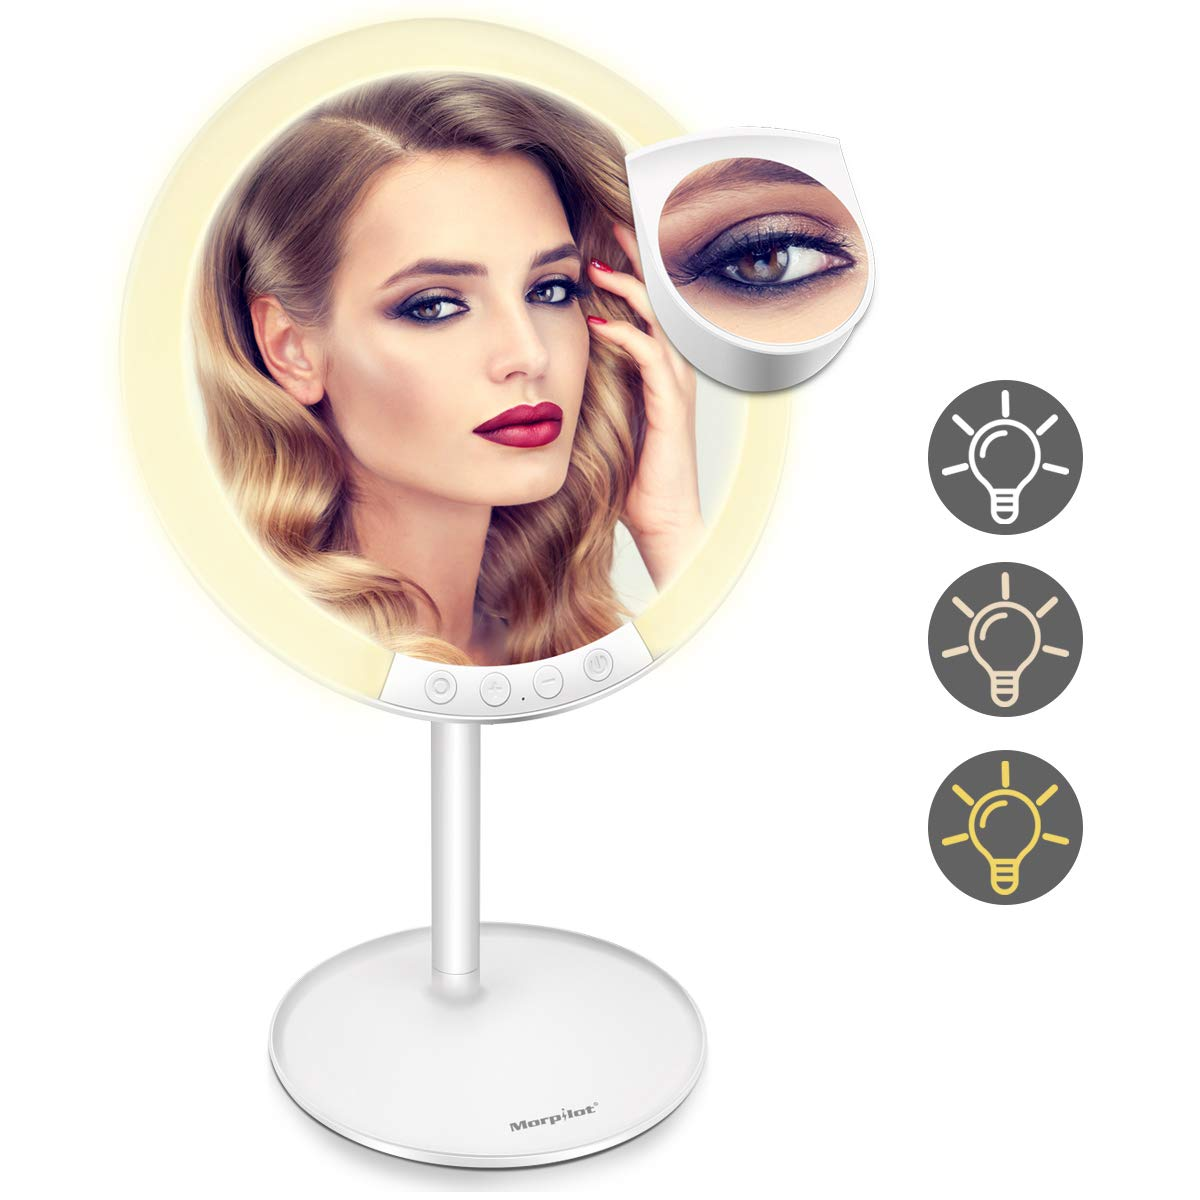 Lighted Makeup Mirror, Morpilot 7.8'' 1X Vanity LED Mirror with 3 Color Modes & 7-Level Adjustable Brightness, 120 Degree Rotation, USB Rechargeable with Small 7X Magnifying Mirror for Cosmetic